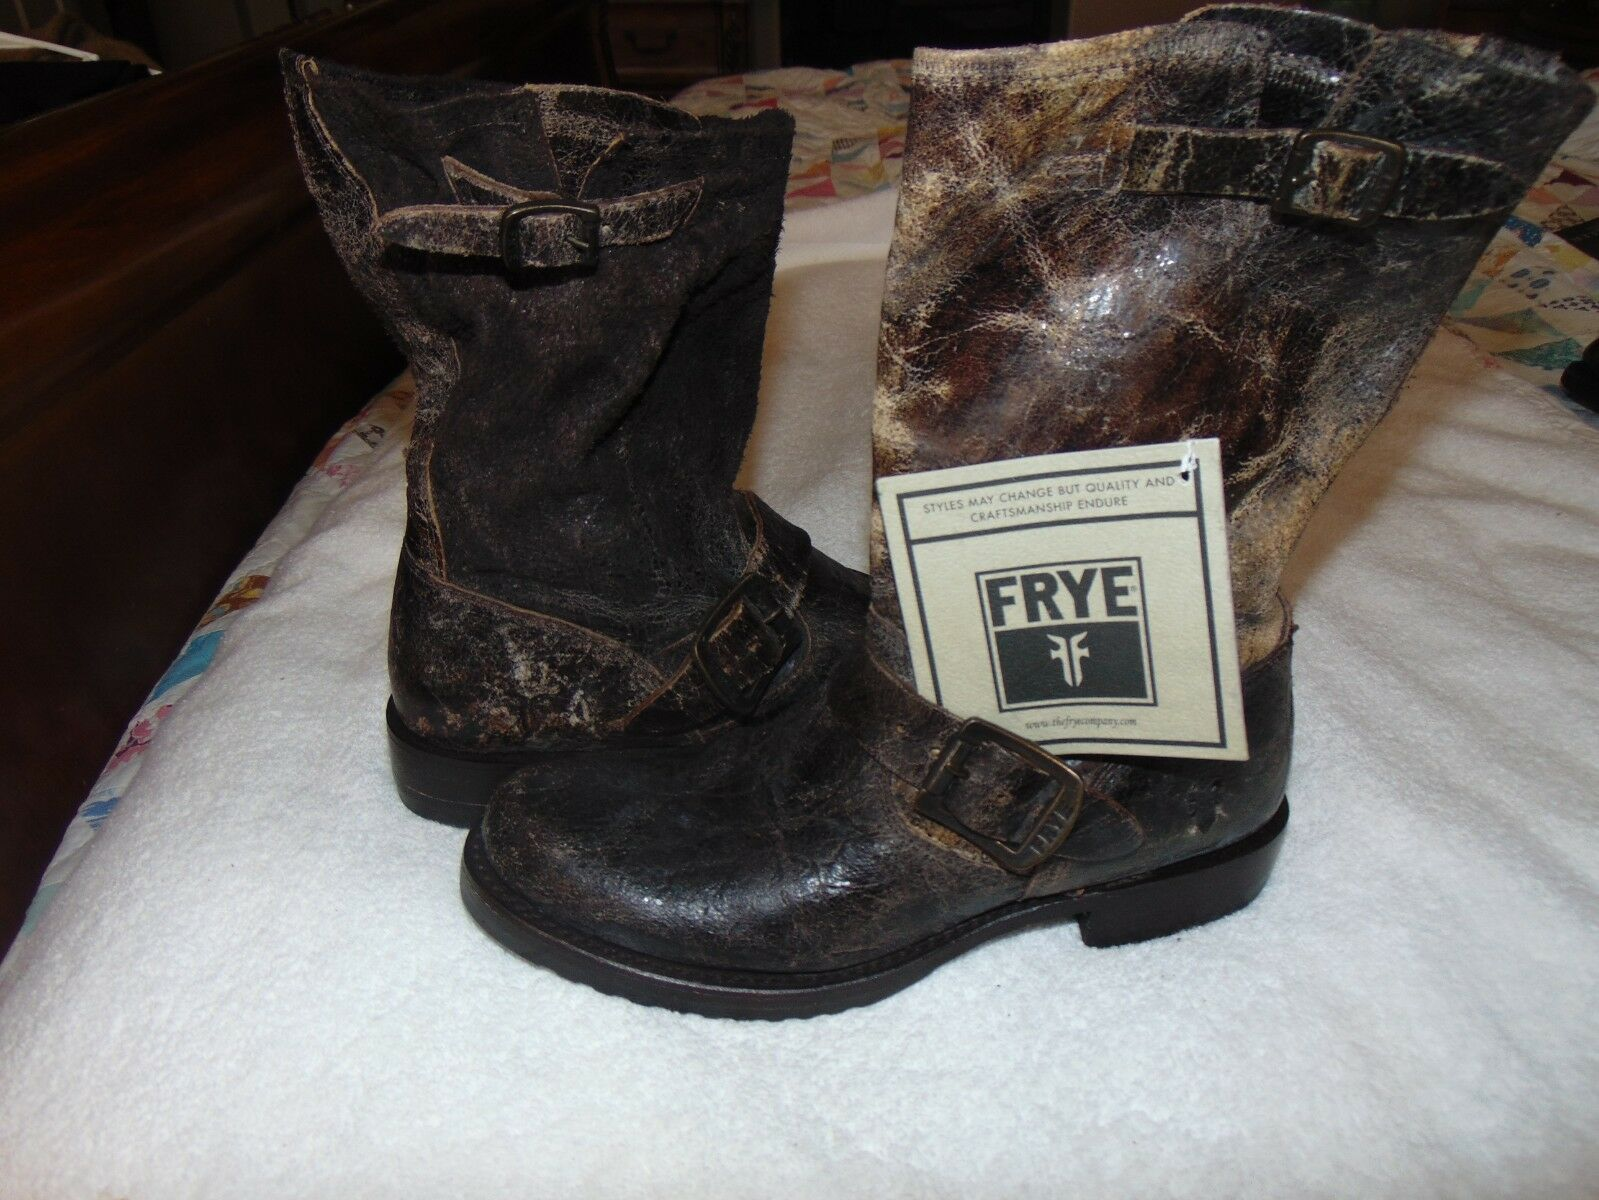 NEW NWT'S RYE VERONICA SHORT BOOT CHOCOLATE BROWN    DISTRESSED BOOTS  6.5 B   288 5de47c